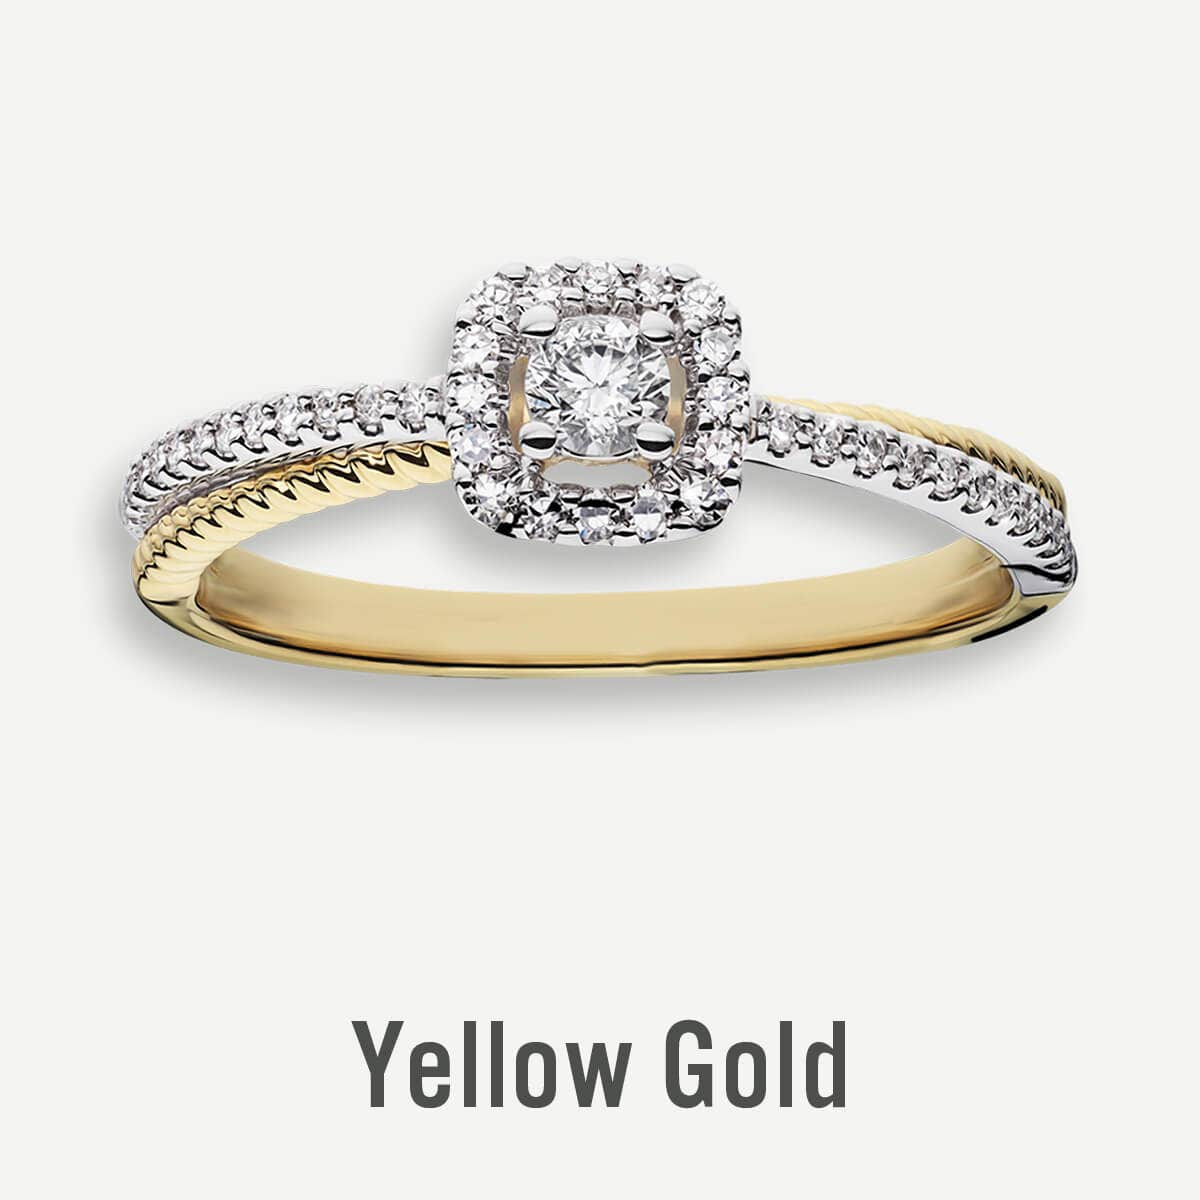 Yellow Gold Promise Rings